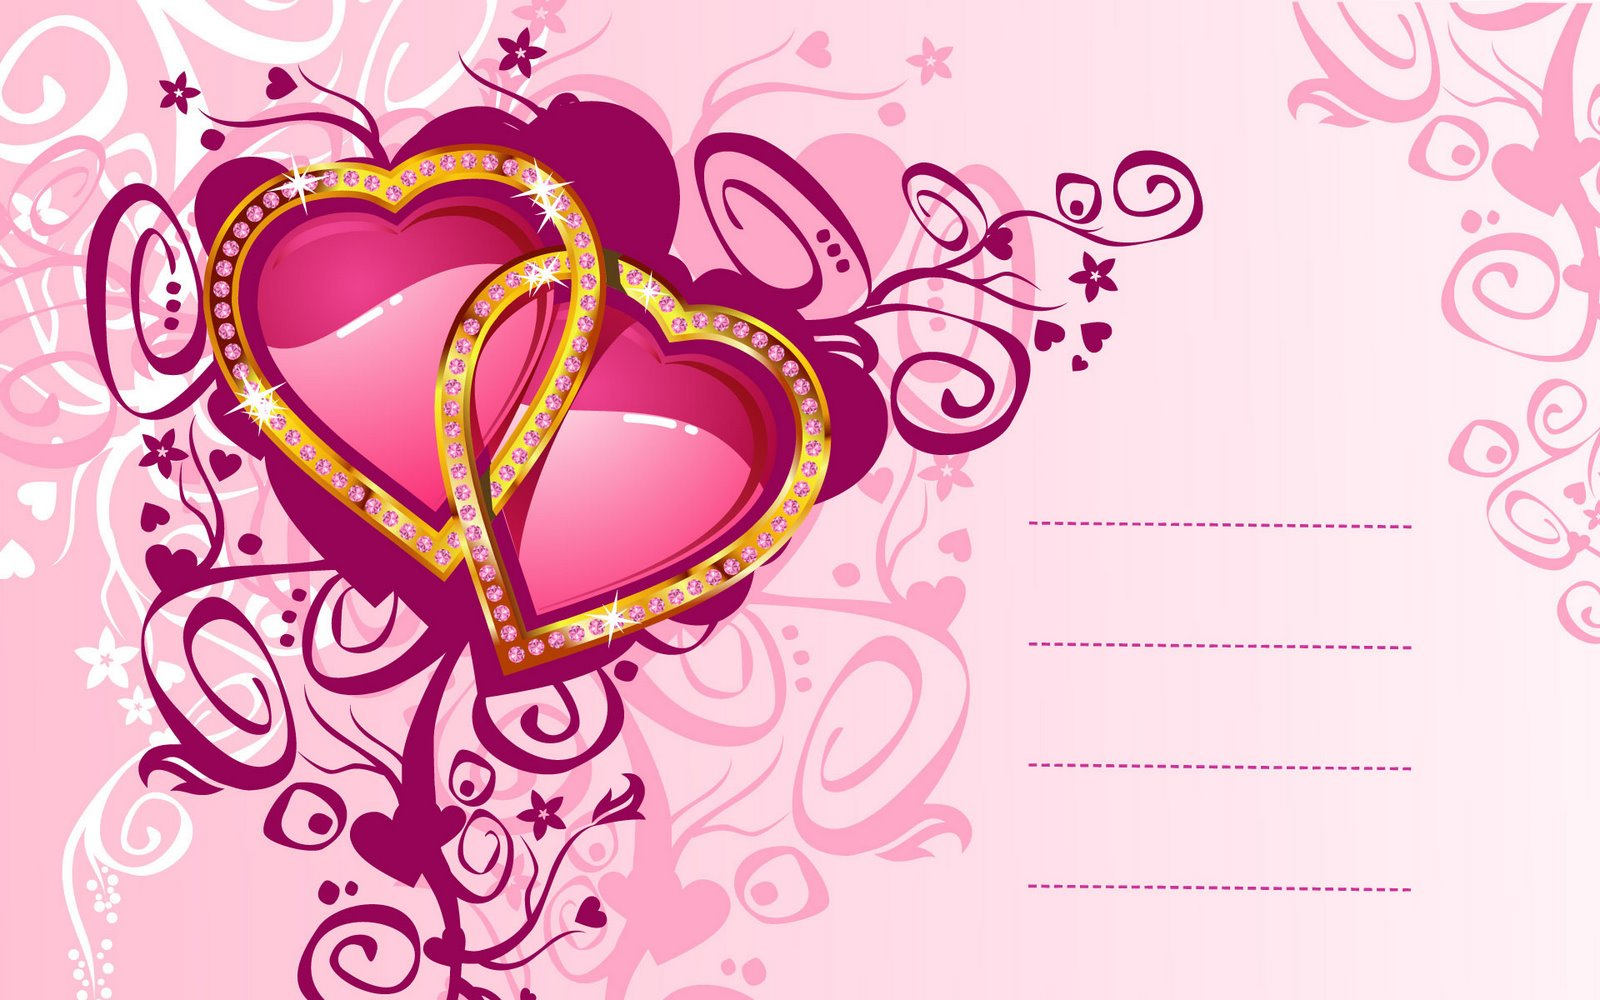 Download Wallpaper Love Letter - Love+Pictures+%2528161%2529  Image_569312.jpg